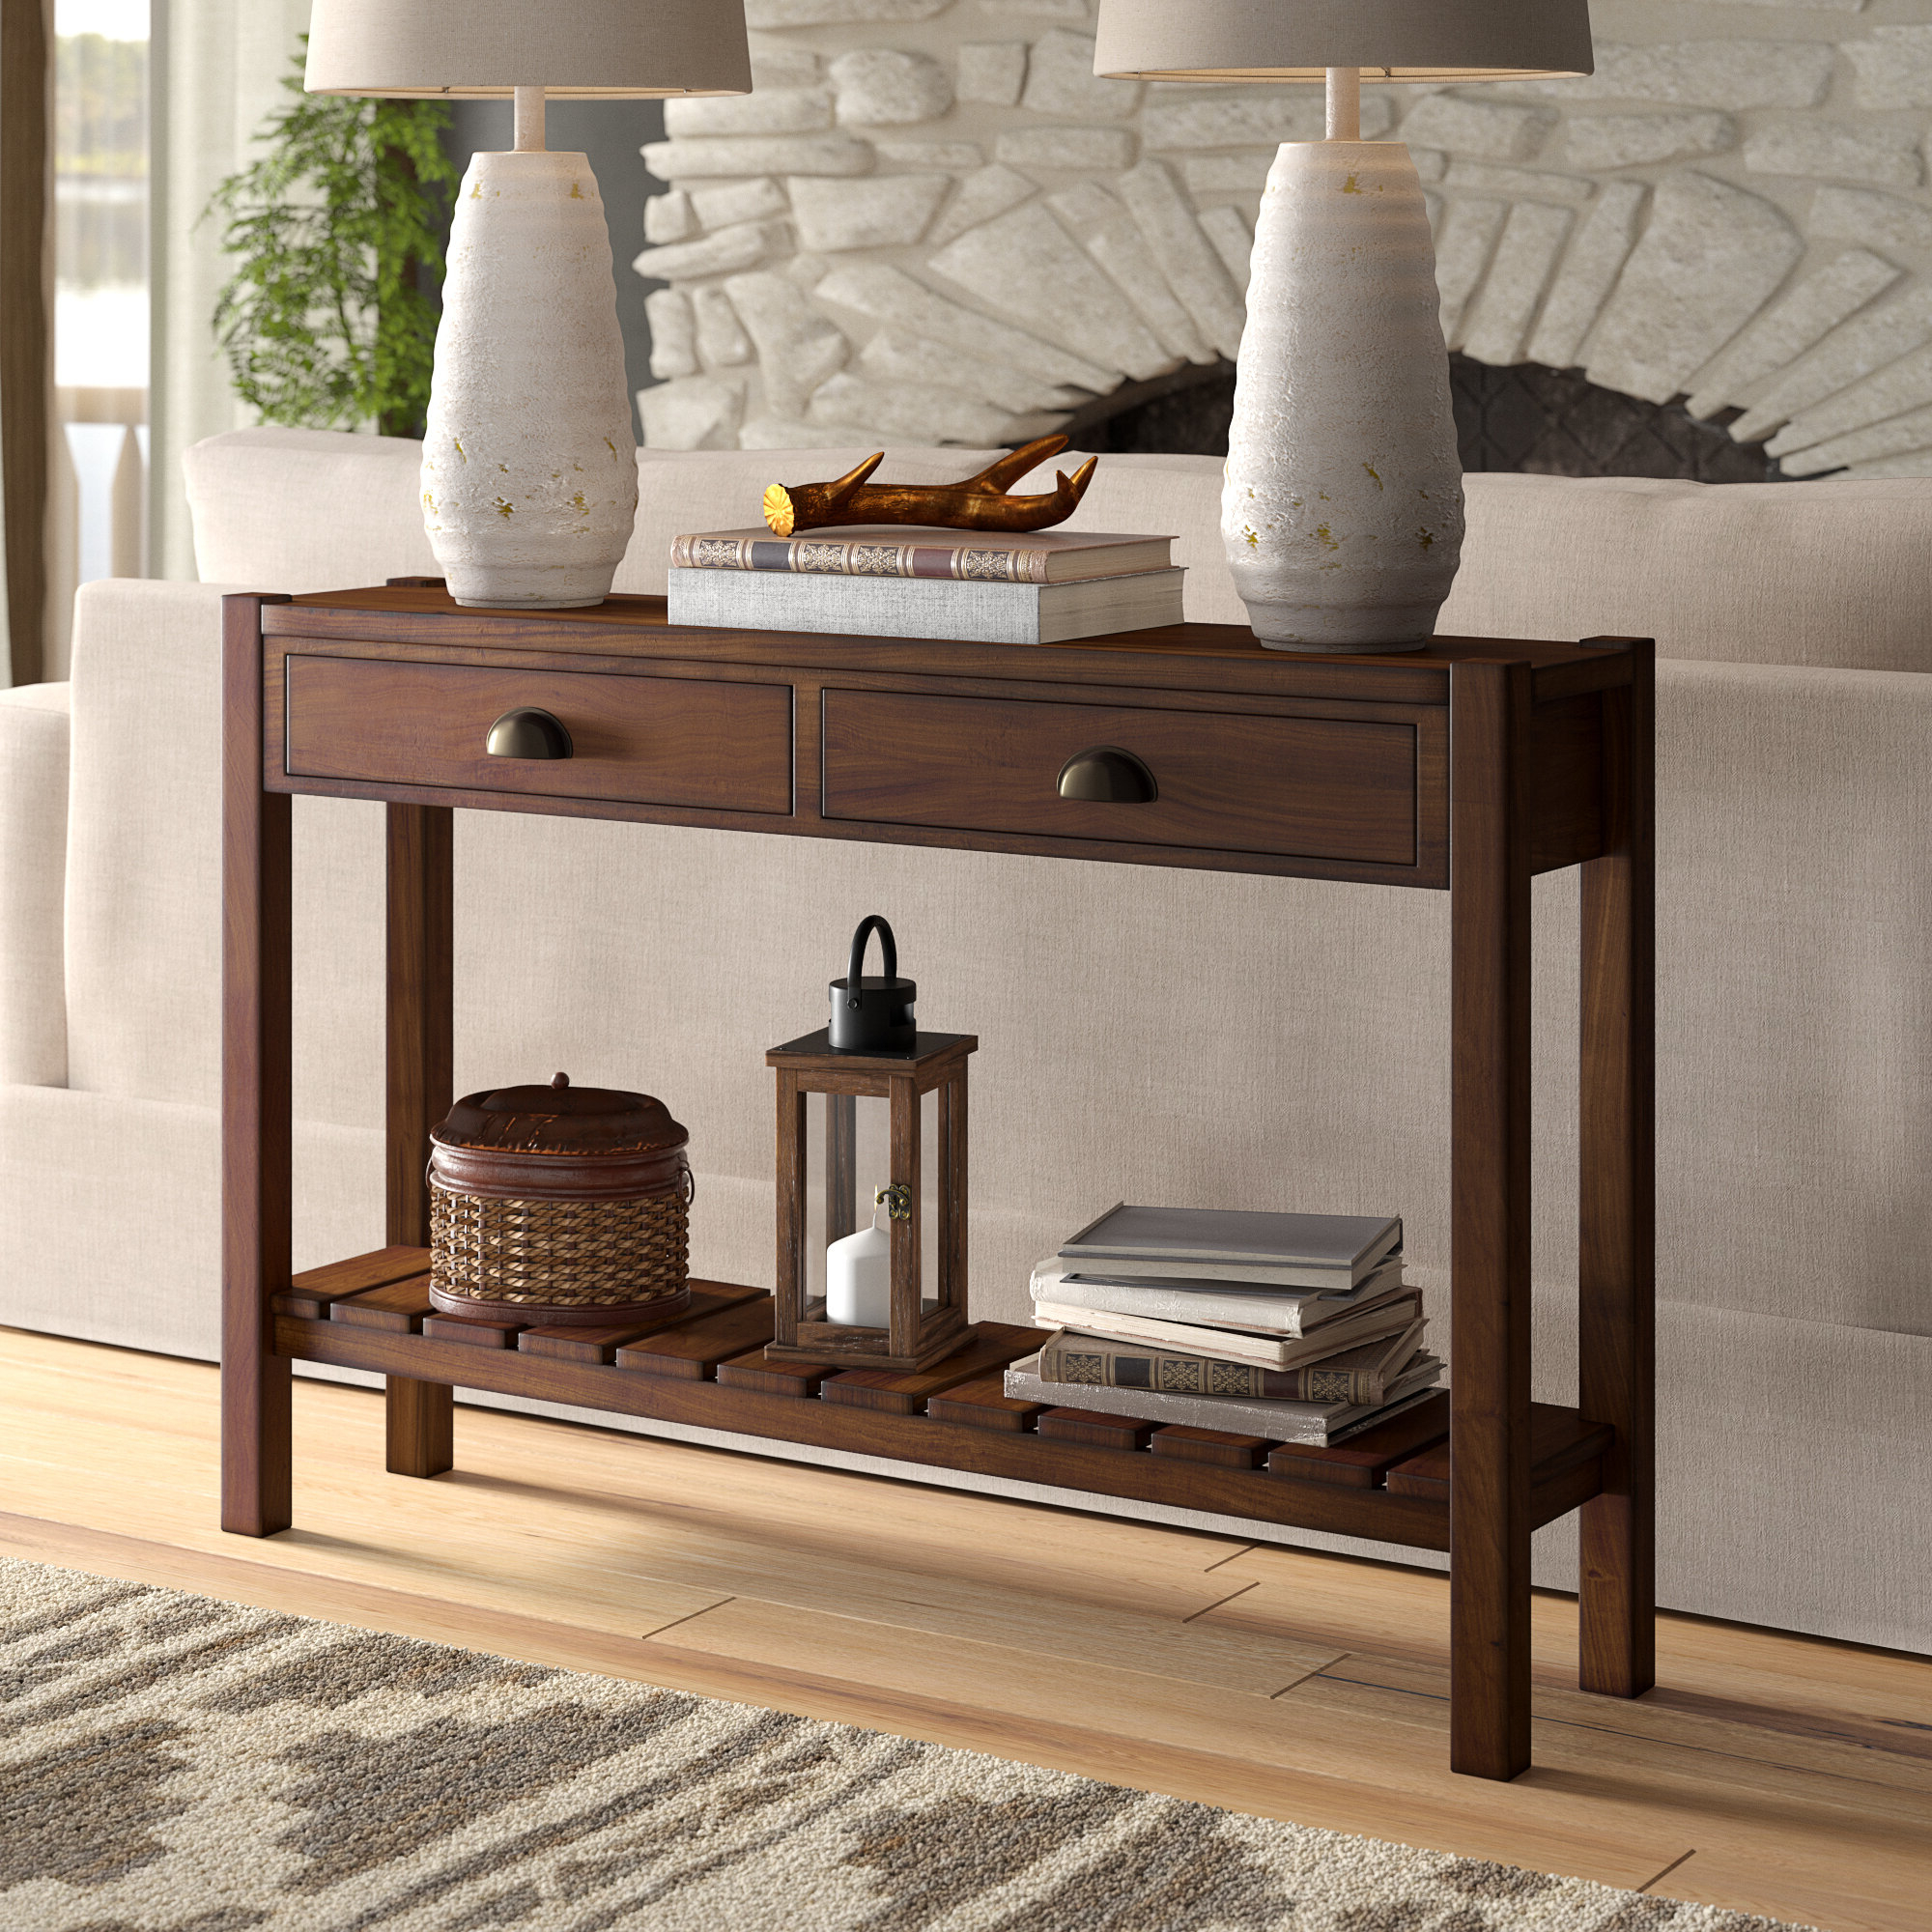 Best And Newest Narrow Console Tables You'll Love (View 5 of 20)